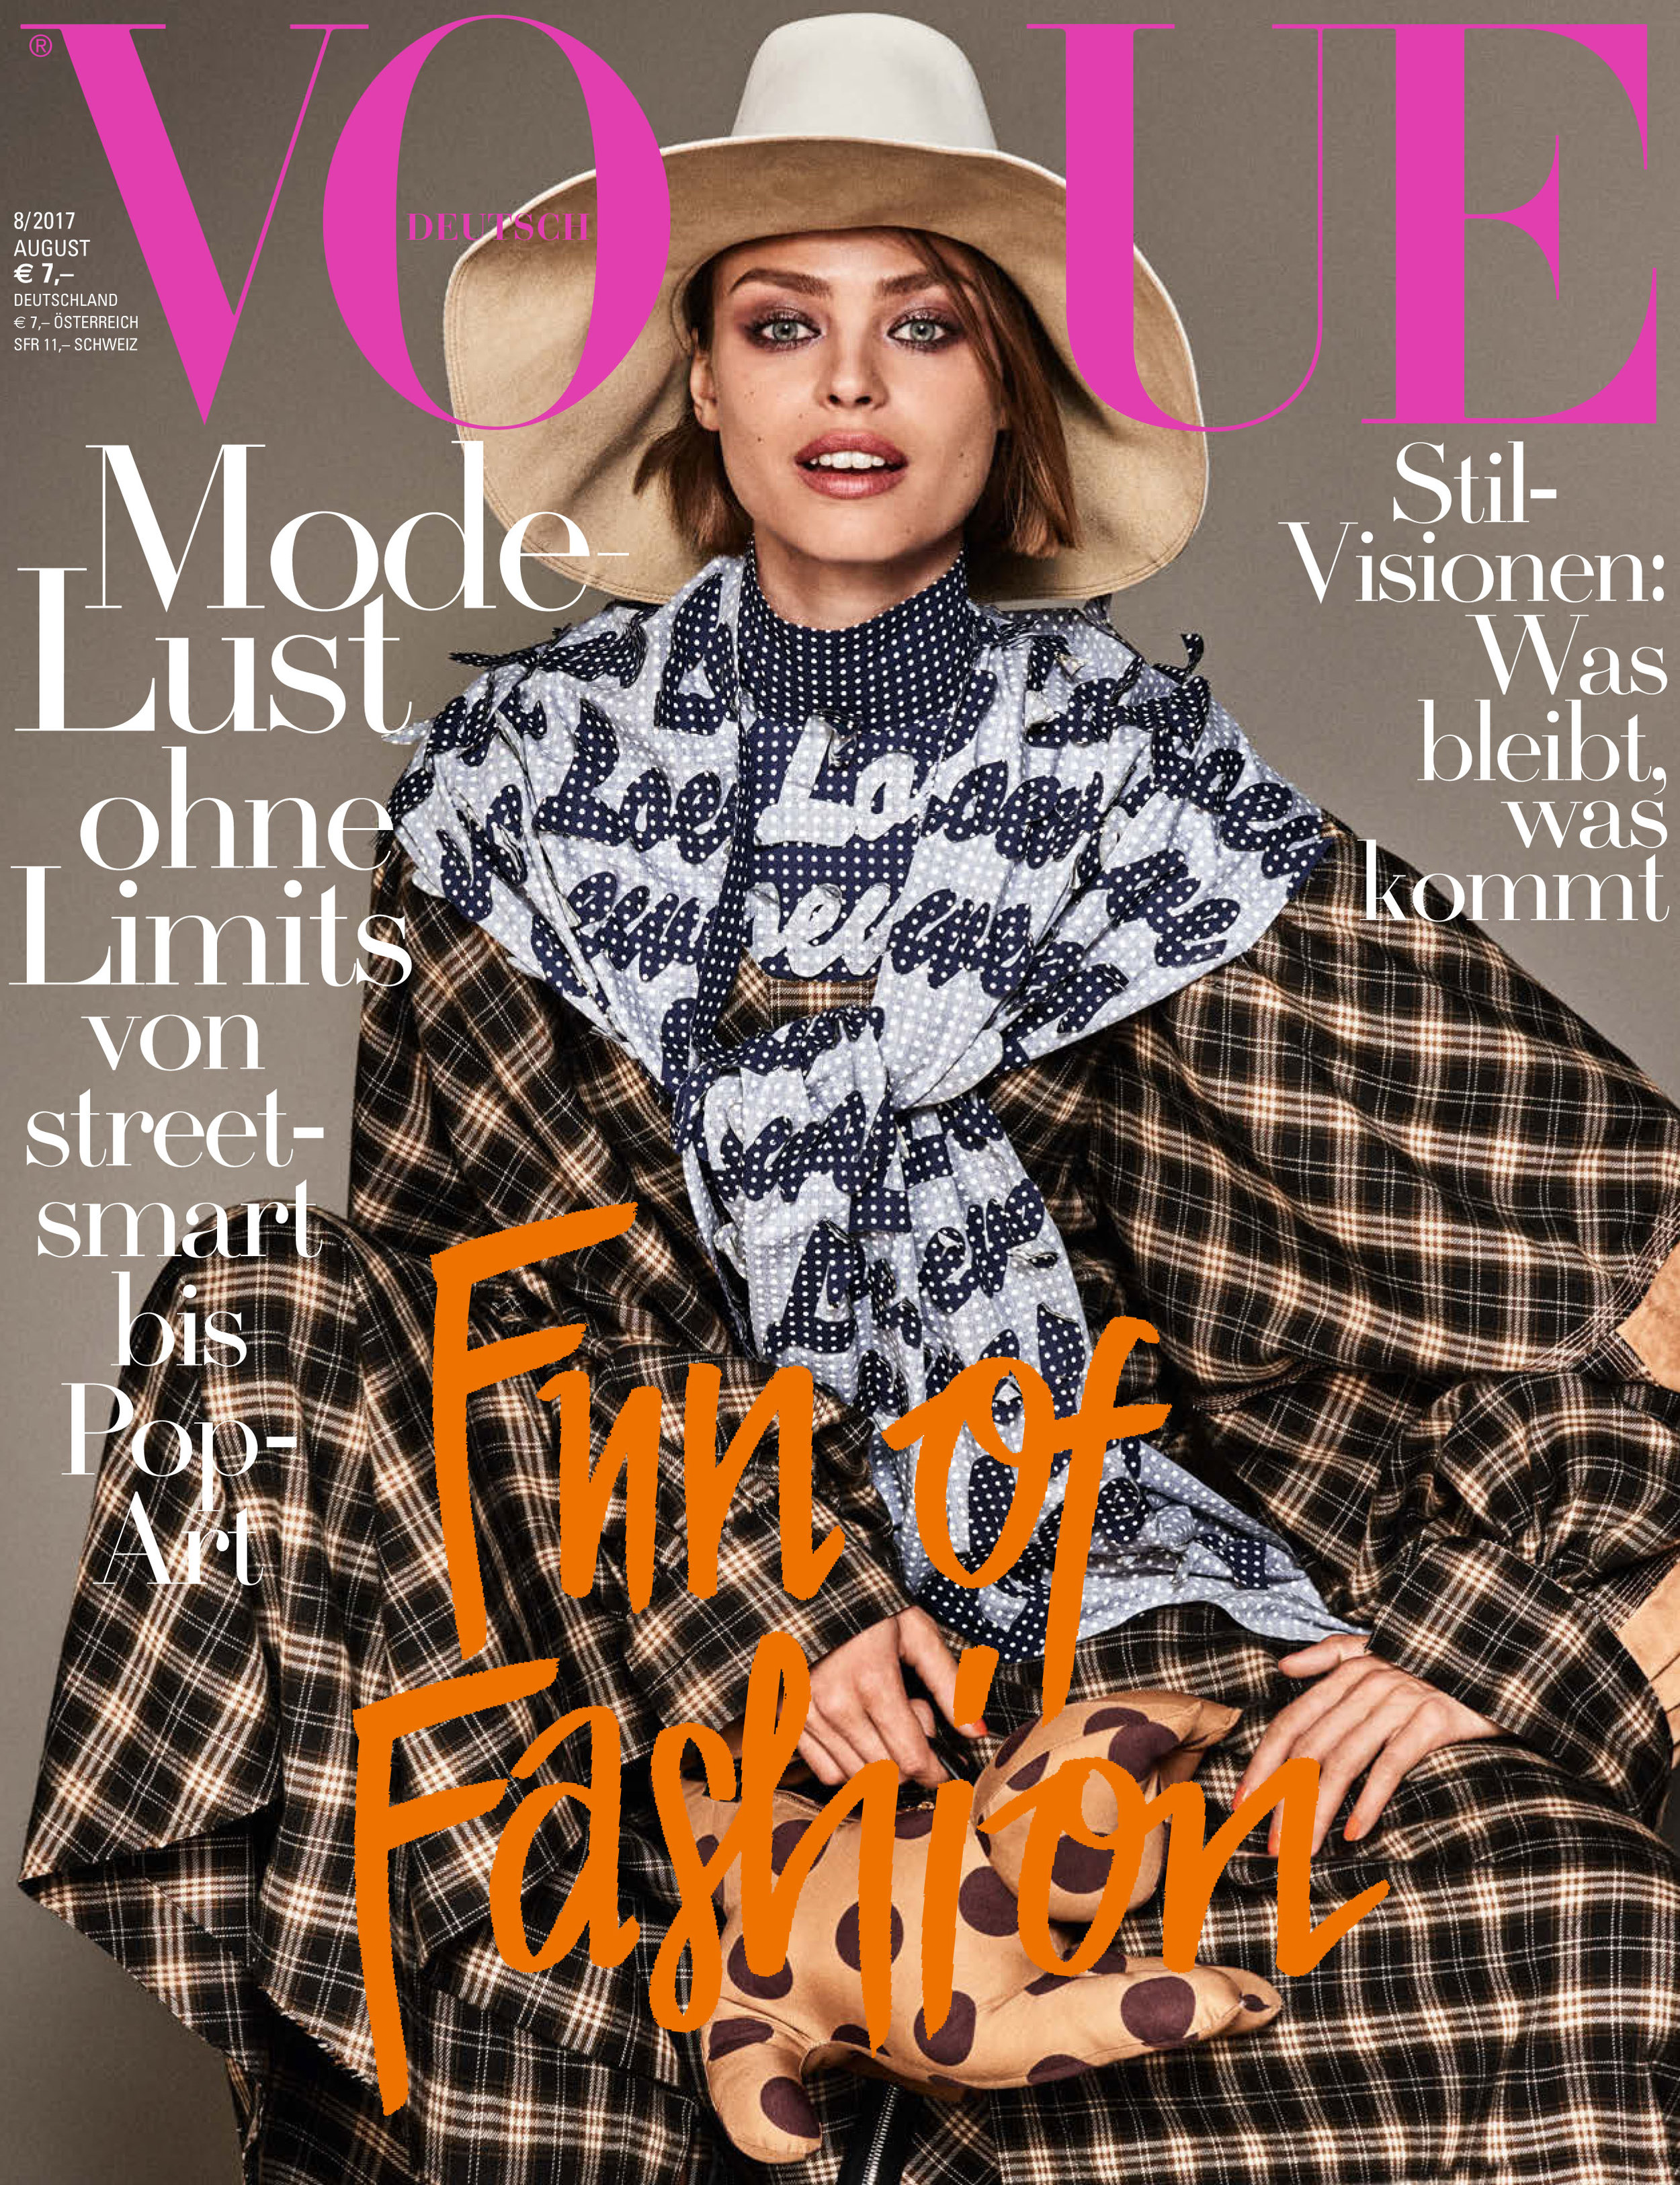 Vogue_Germany__August_2017-2.jpg